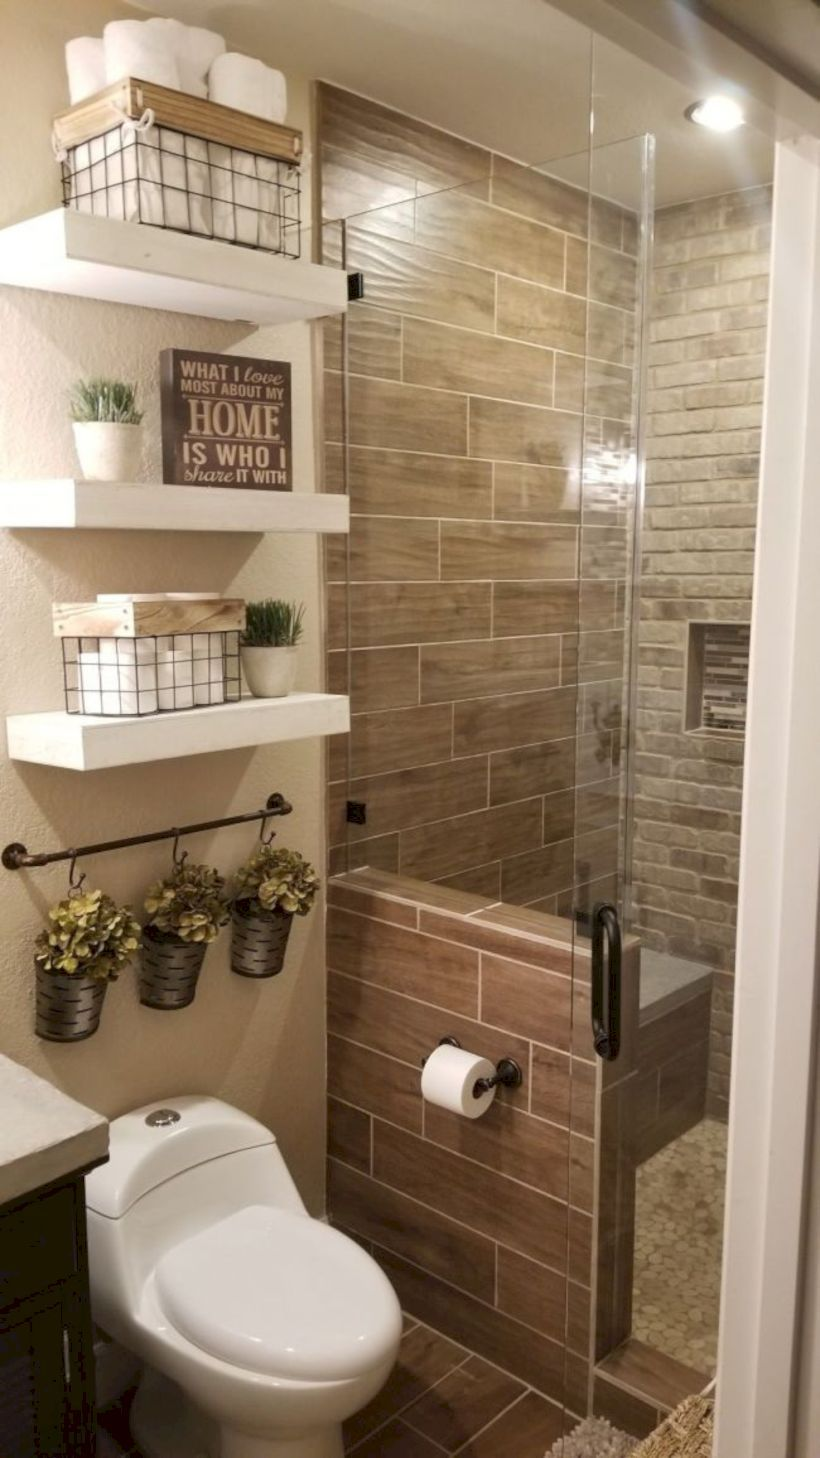 Nice 48 Delicate Bathroom Design Ideas For Small Apartment On A Budget More At Https Decoratrend Com Small Bathroom Remodel Bathrooms Remodel Small Bathroom